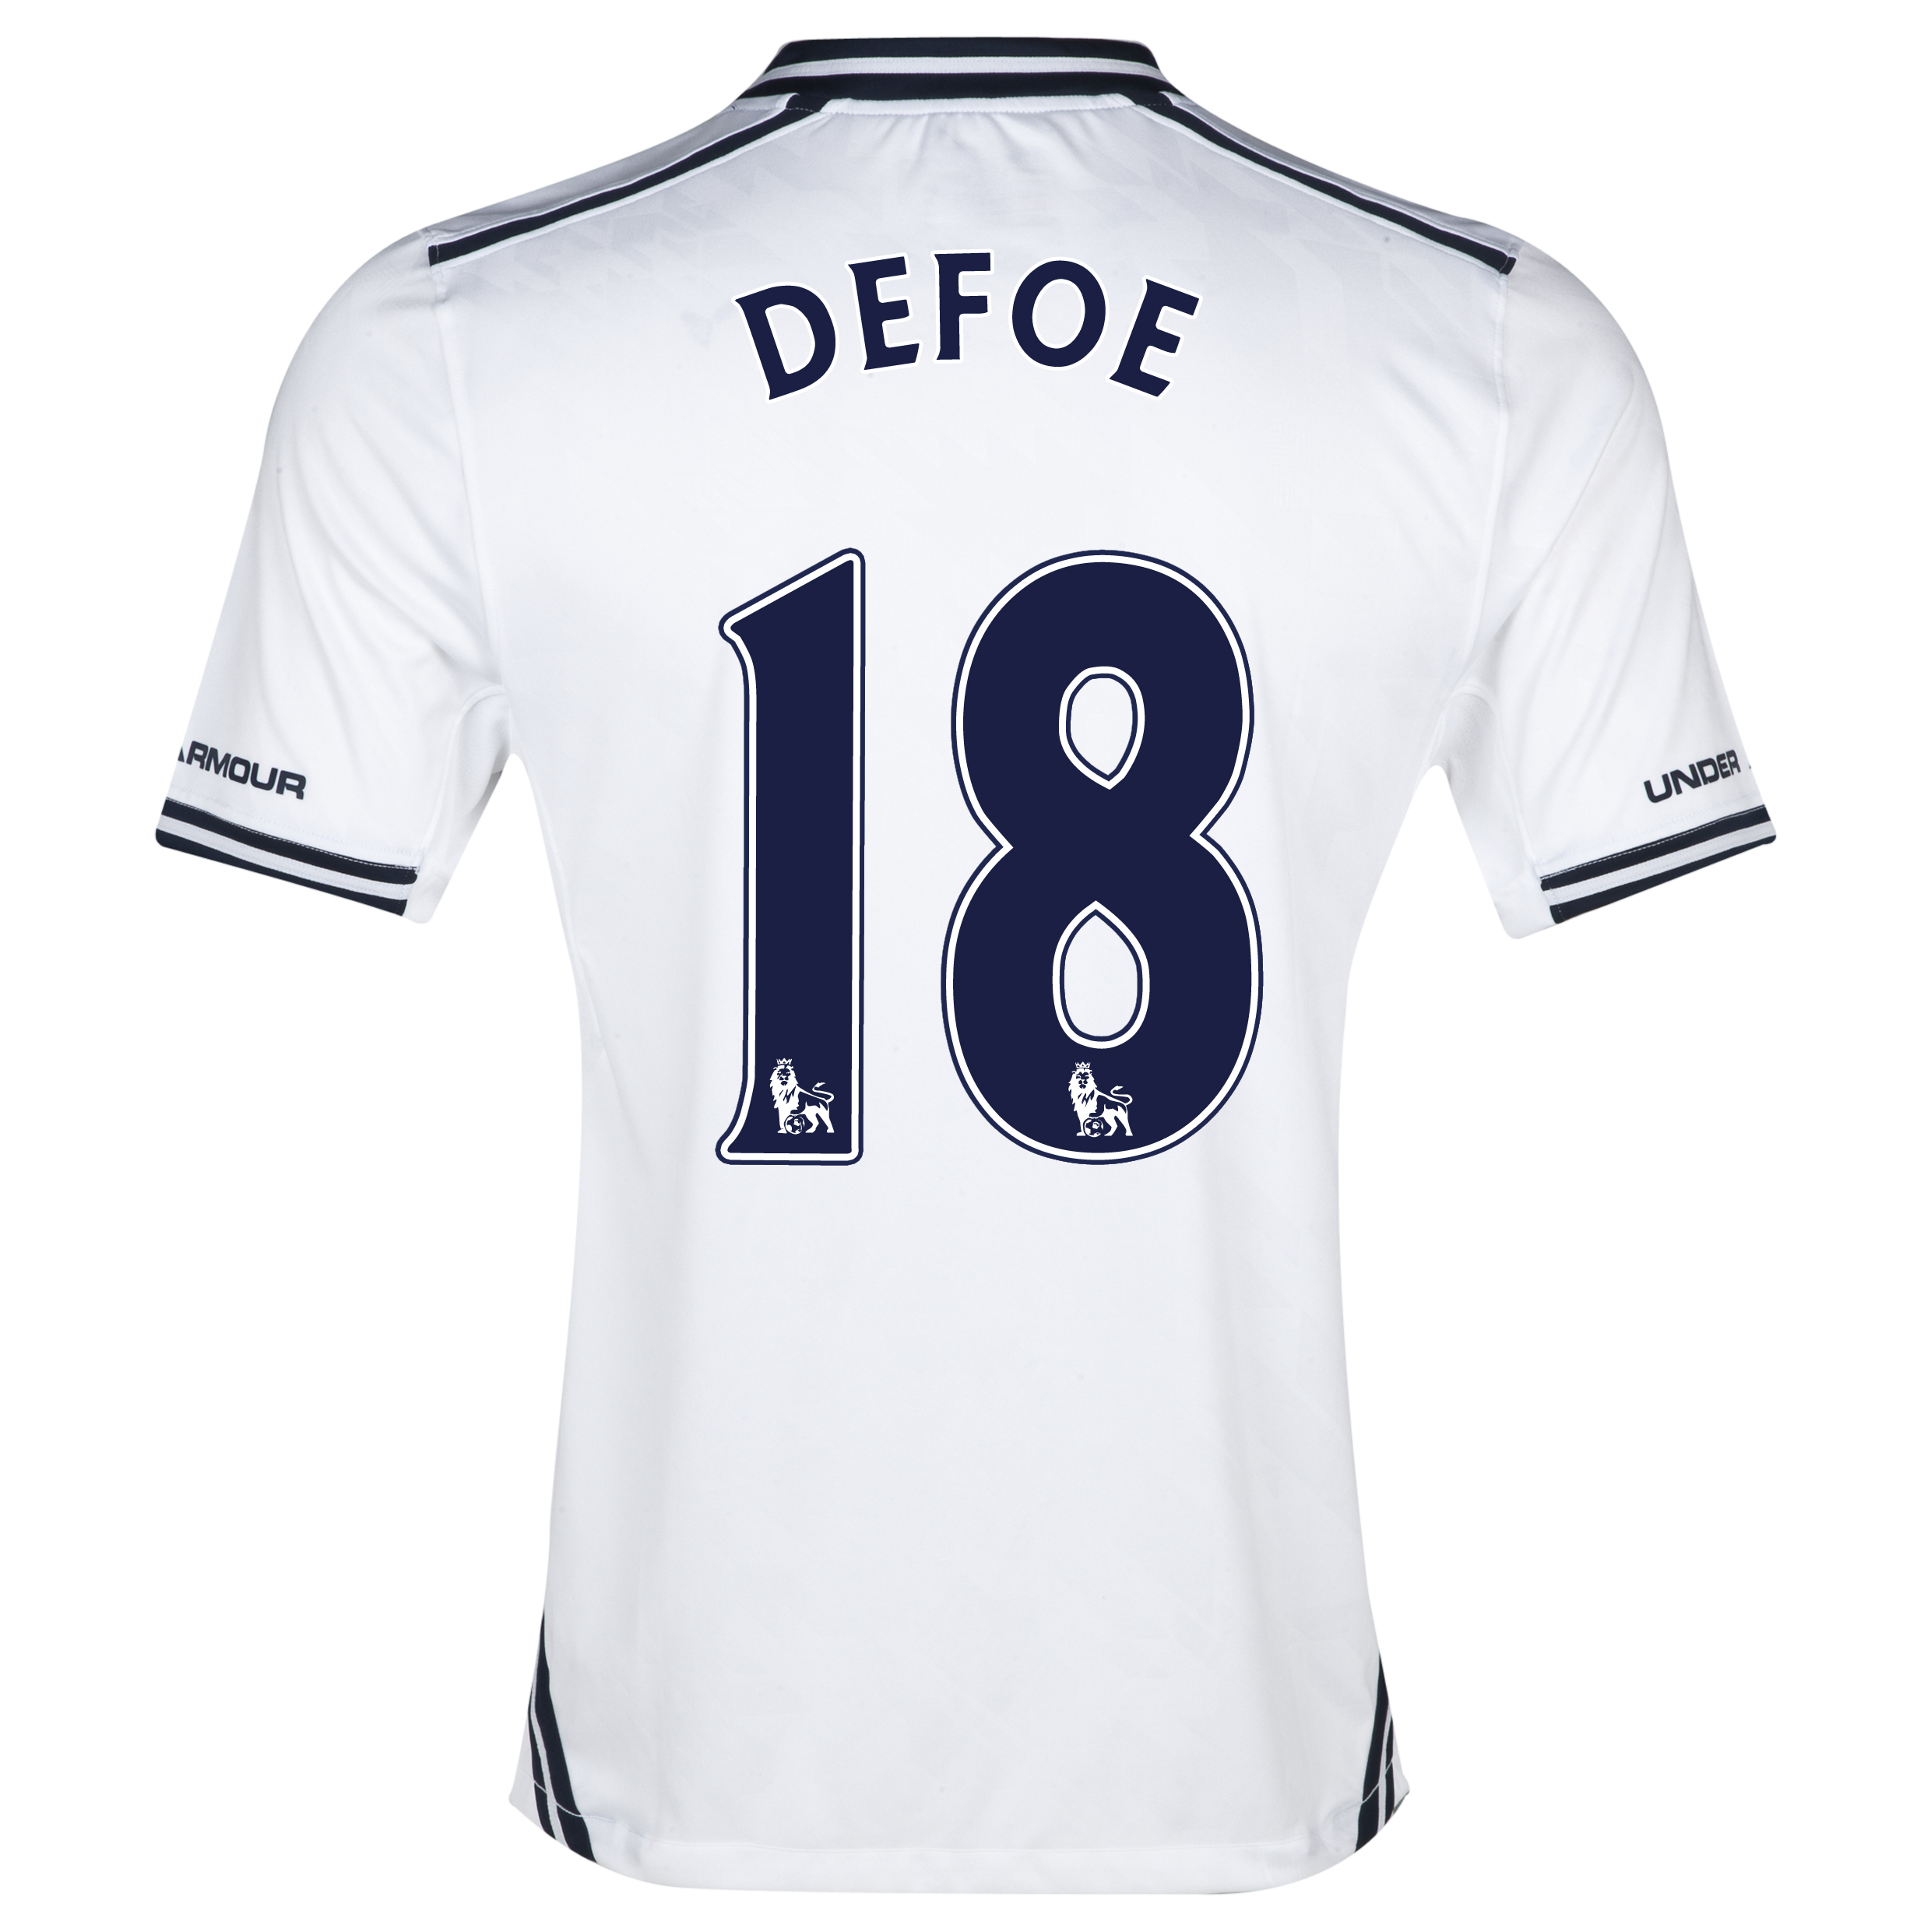 Tottenham Hotspur Home Shirt 2013/14 with Defoe 18 printing